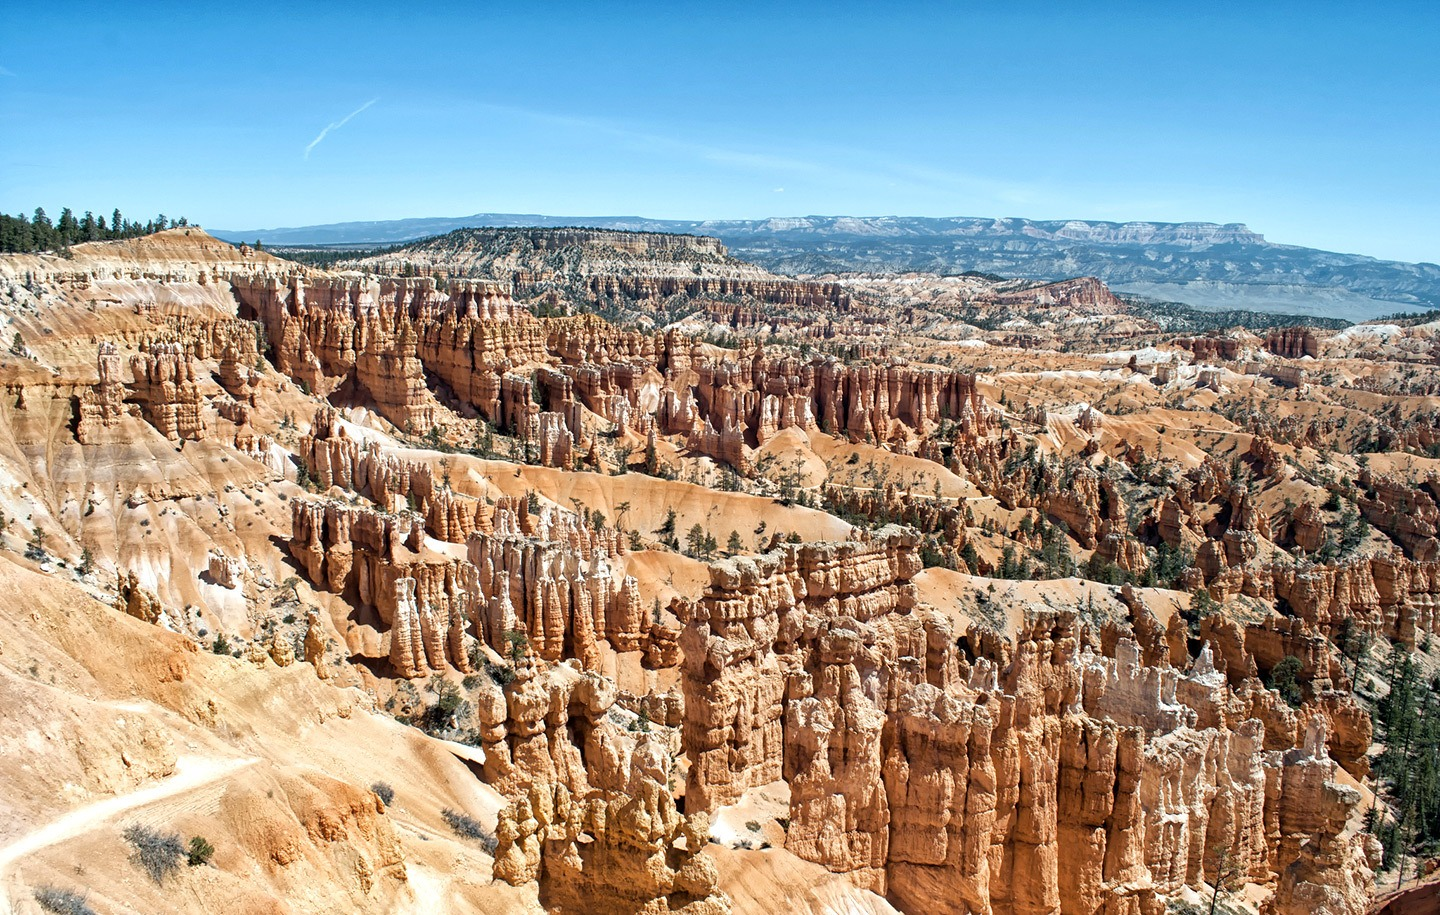 The Rim Trail, Bryce Canyon National Park, Utah